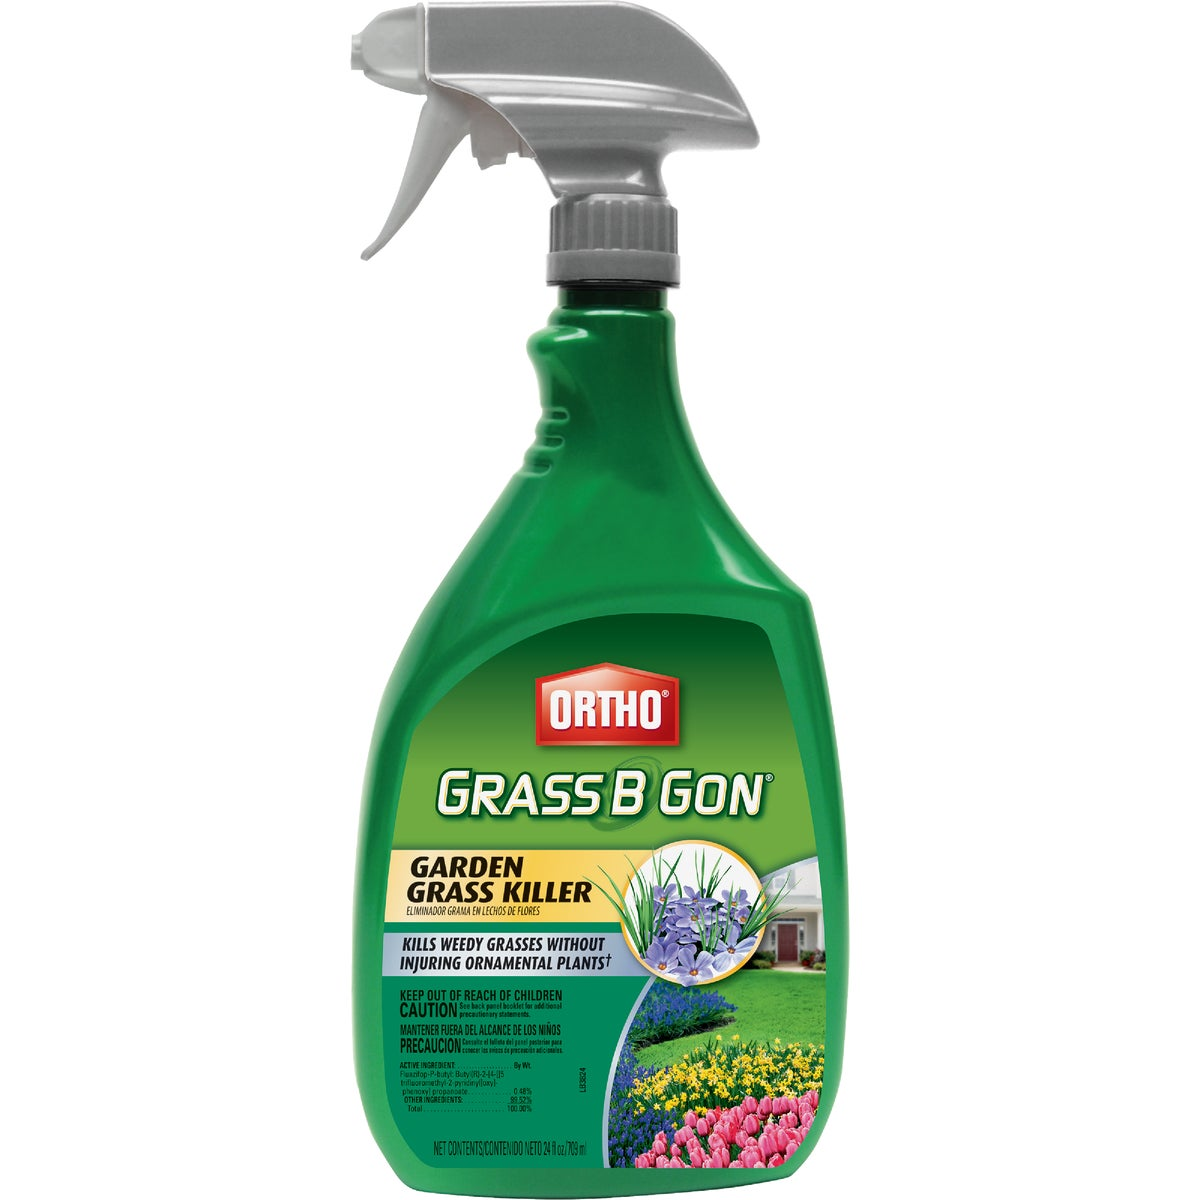 GRASS-B-GON GRASS KILLER - 0438580 by Scotts Company